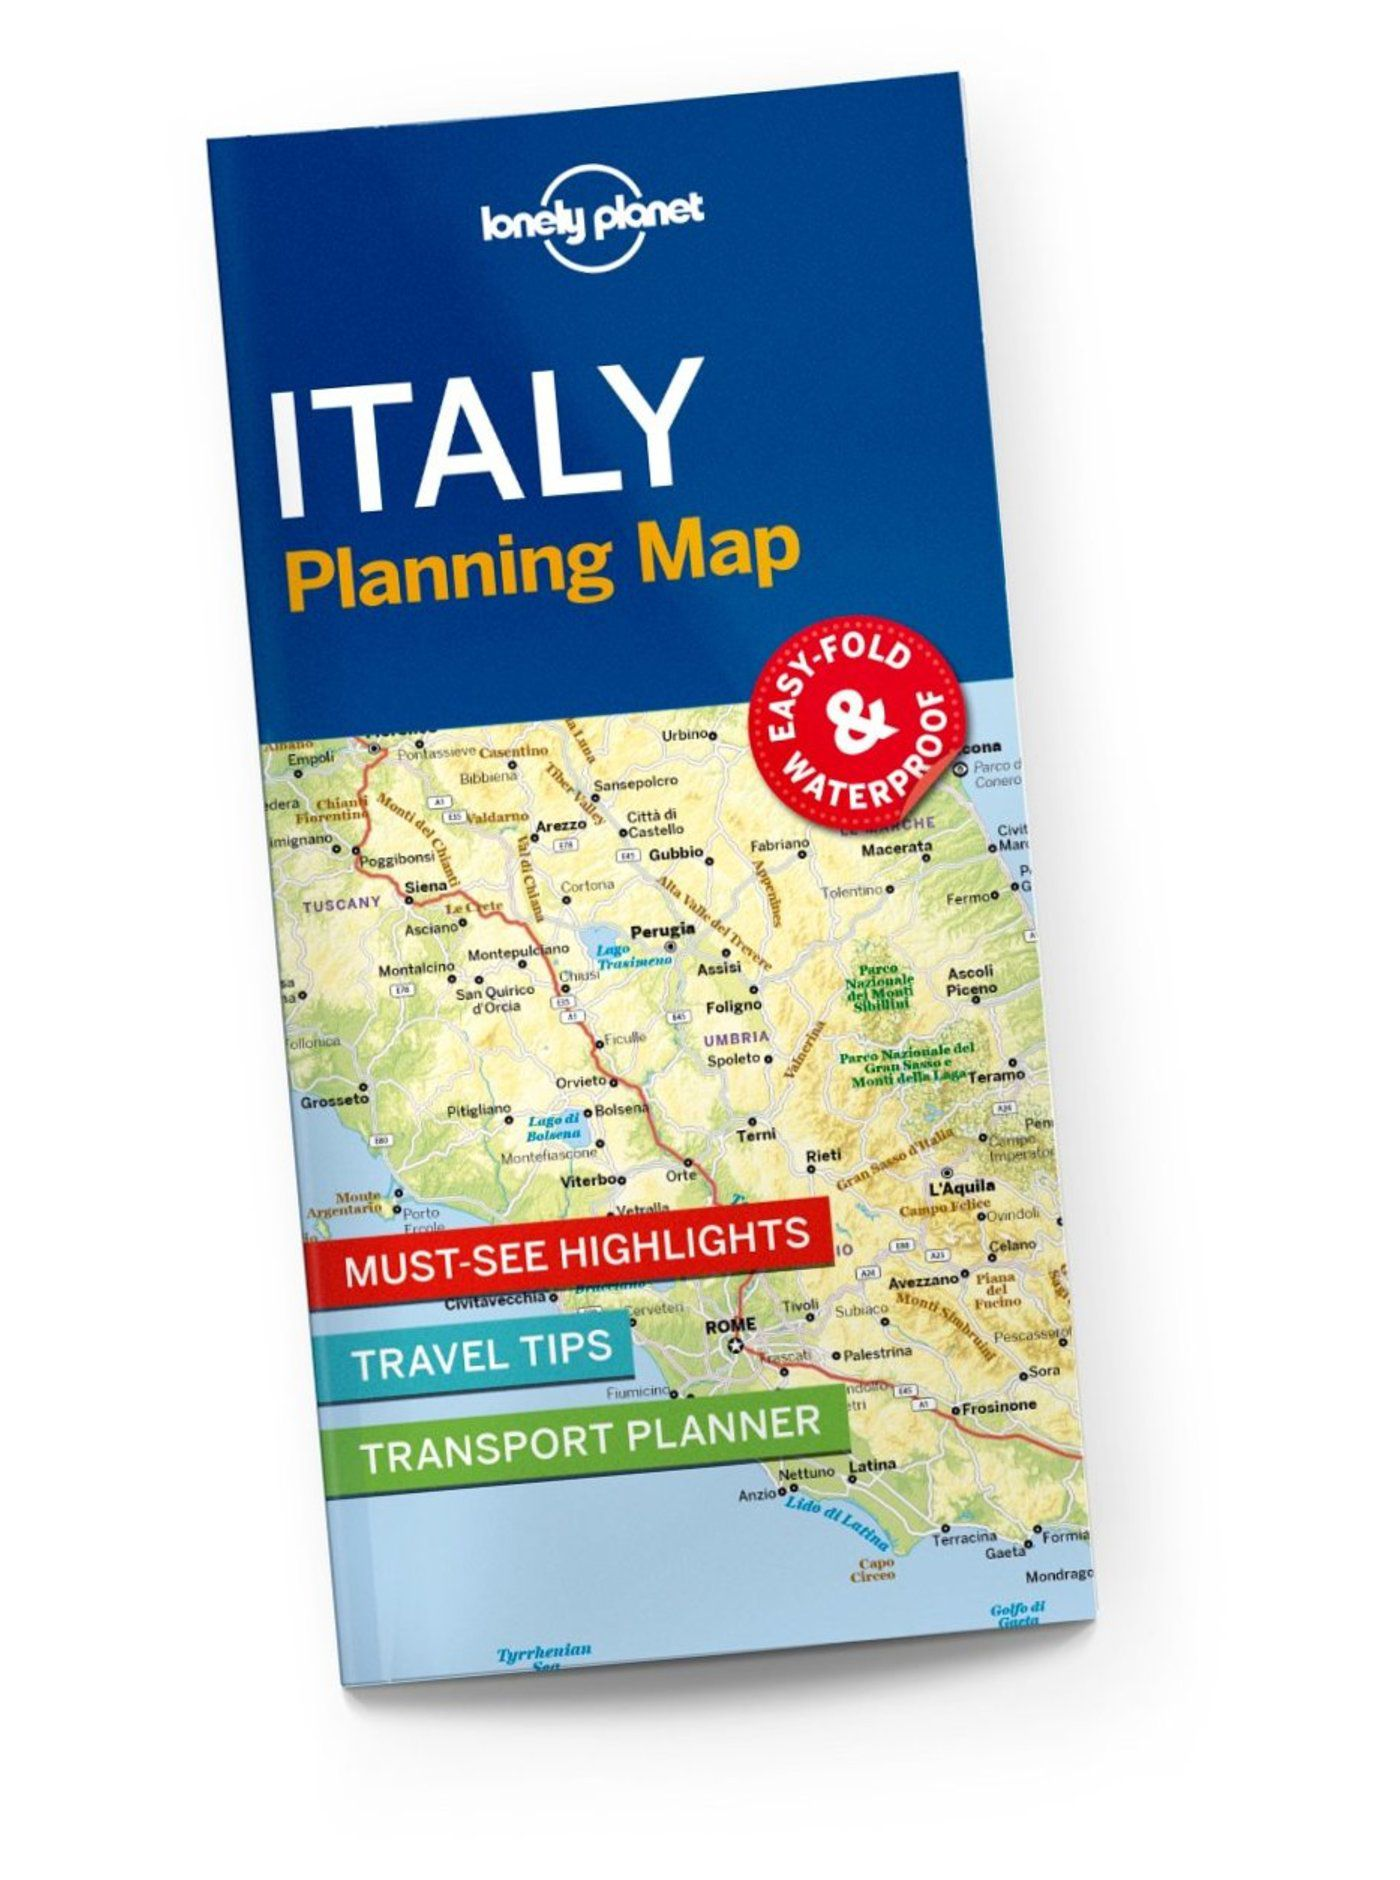 italy planning map lonely planet shop lonely planet us rh shop lonelyplanet com Night Sky Tonight Costa Rica Lonely Planet Guide